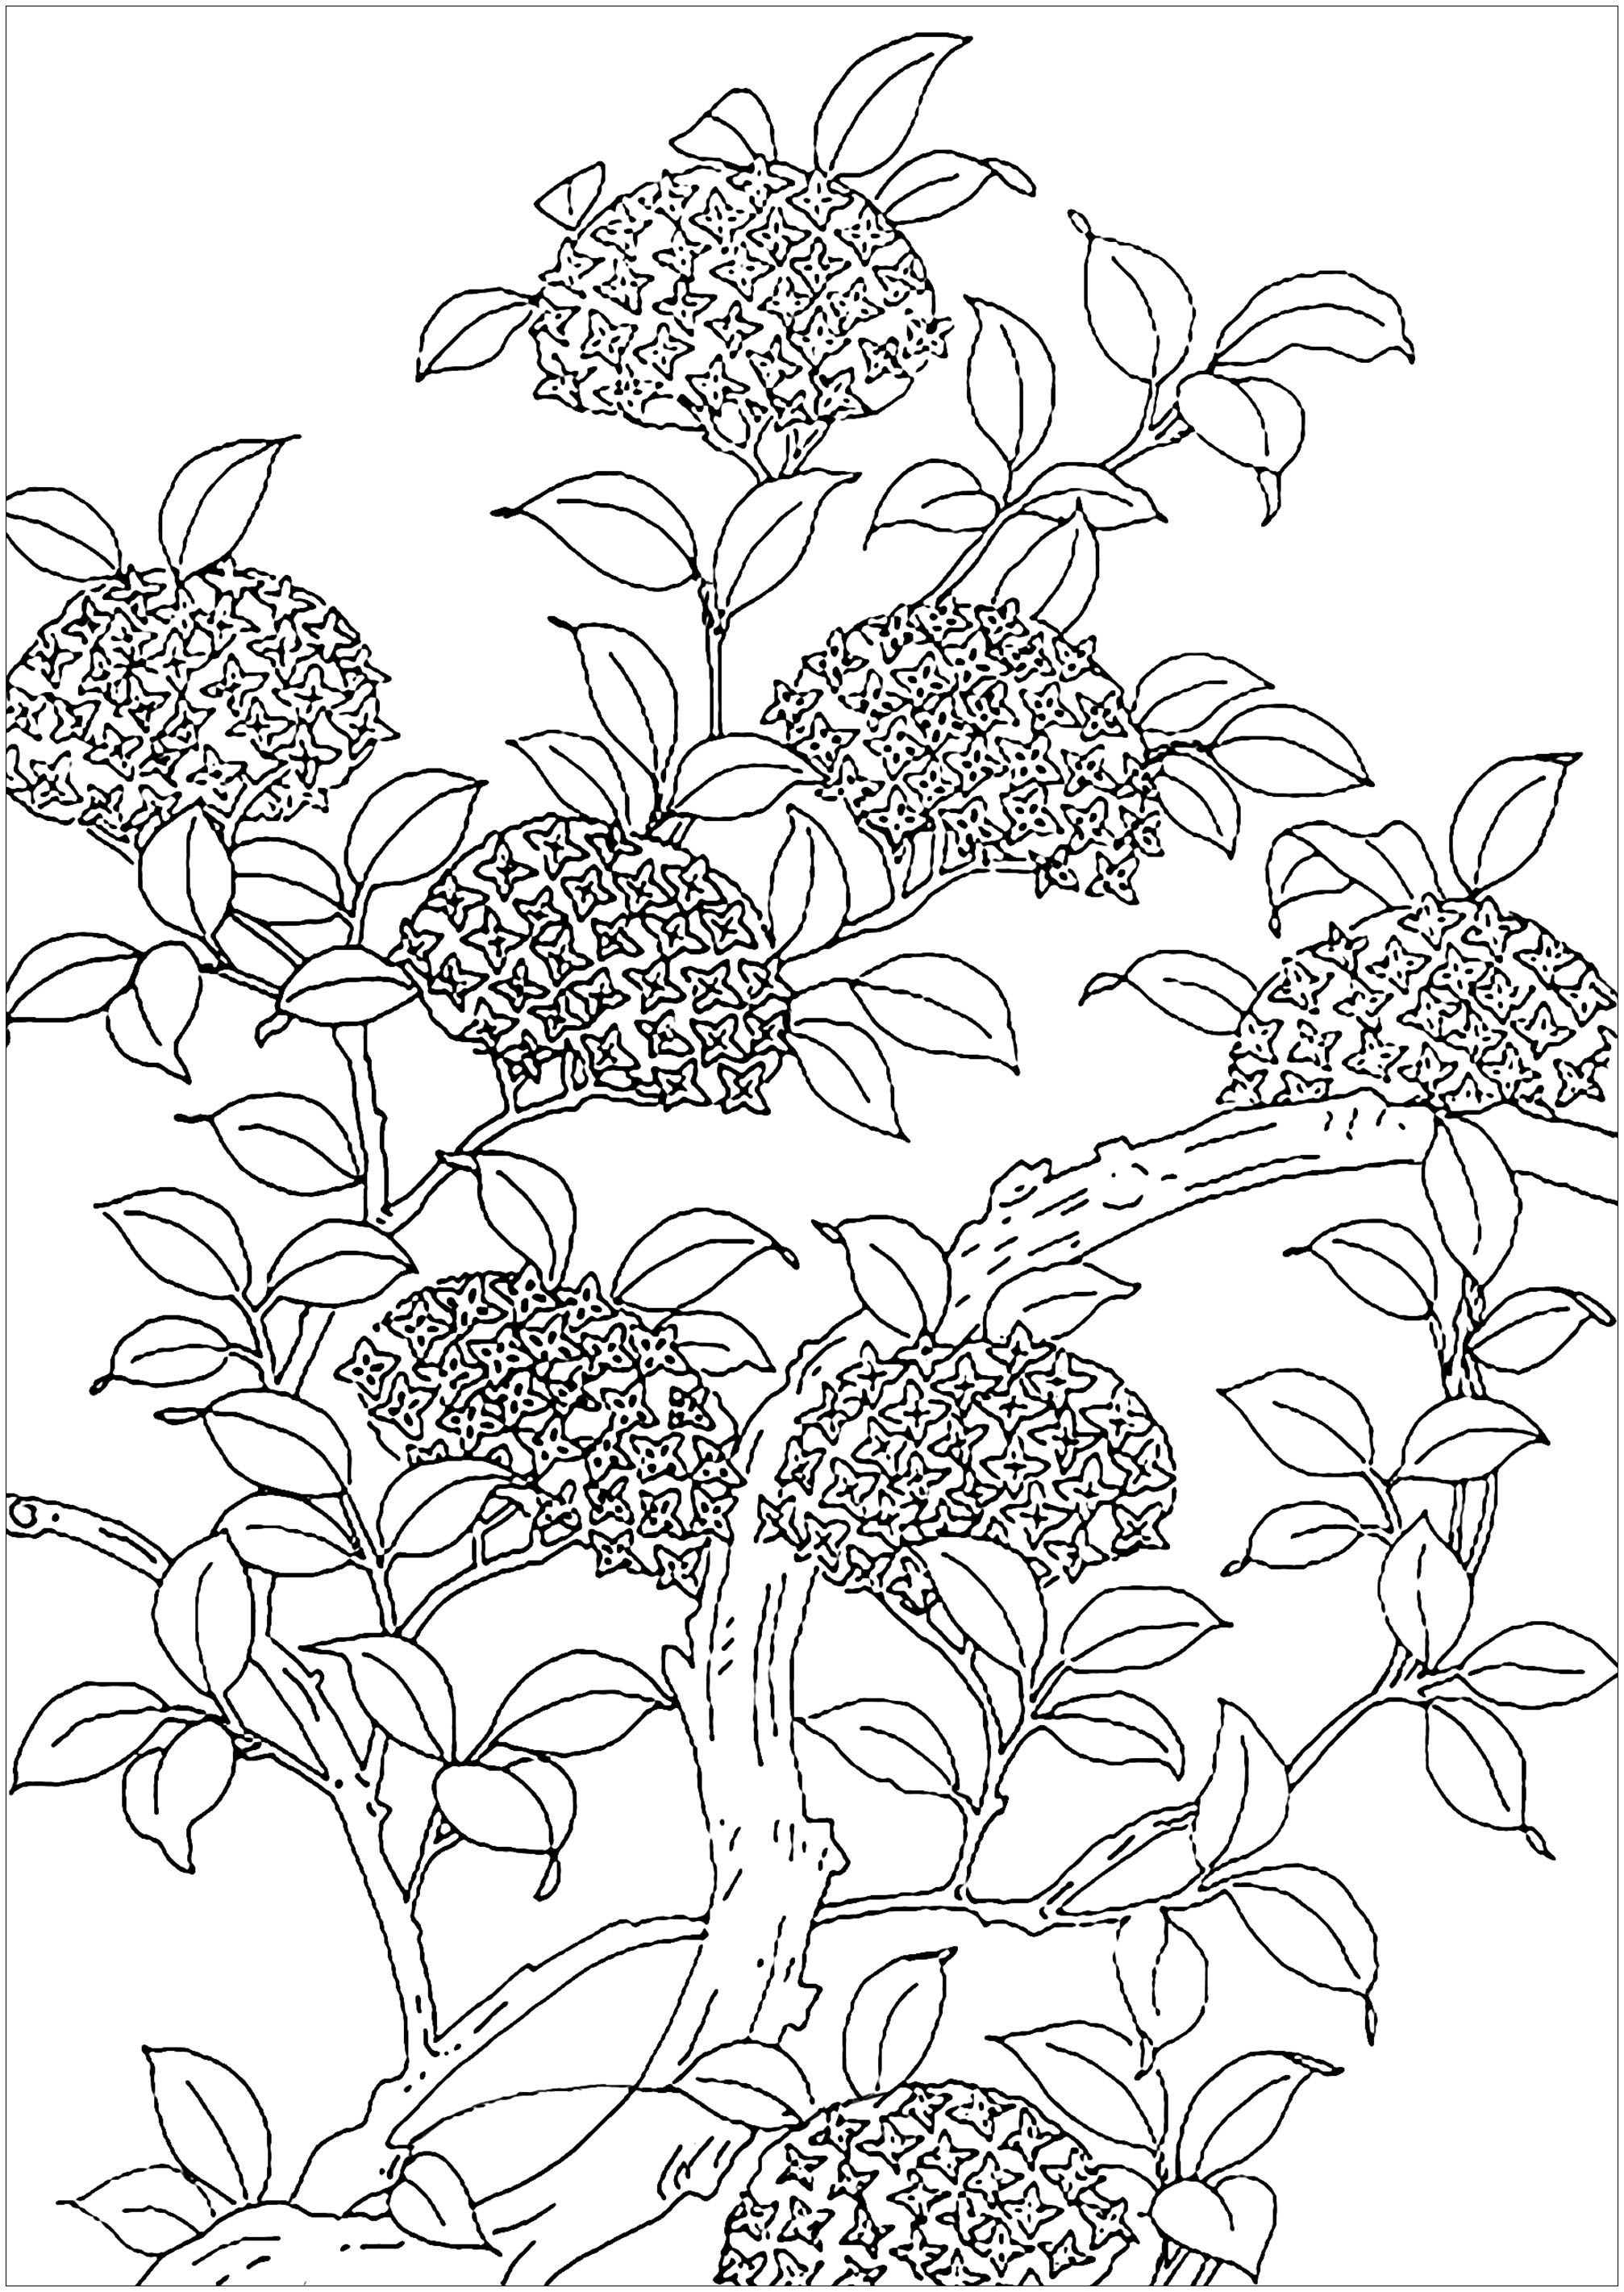 Nice flowered tree. Coloring page created from an old illustration.